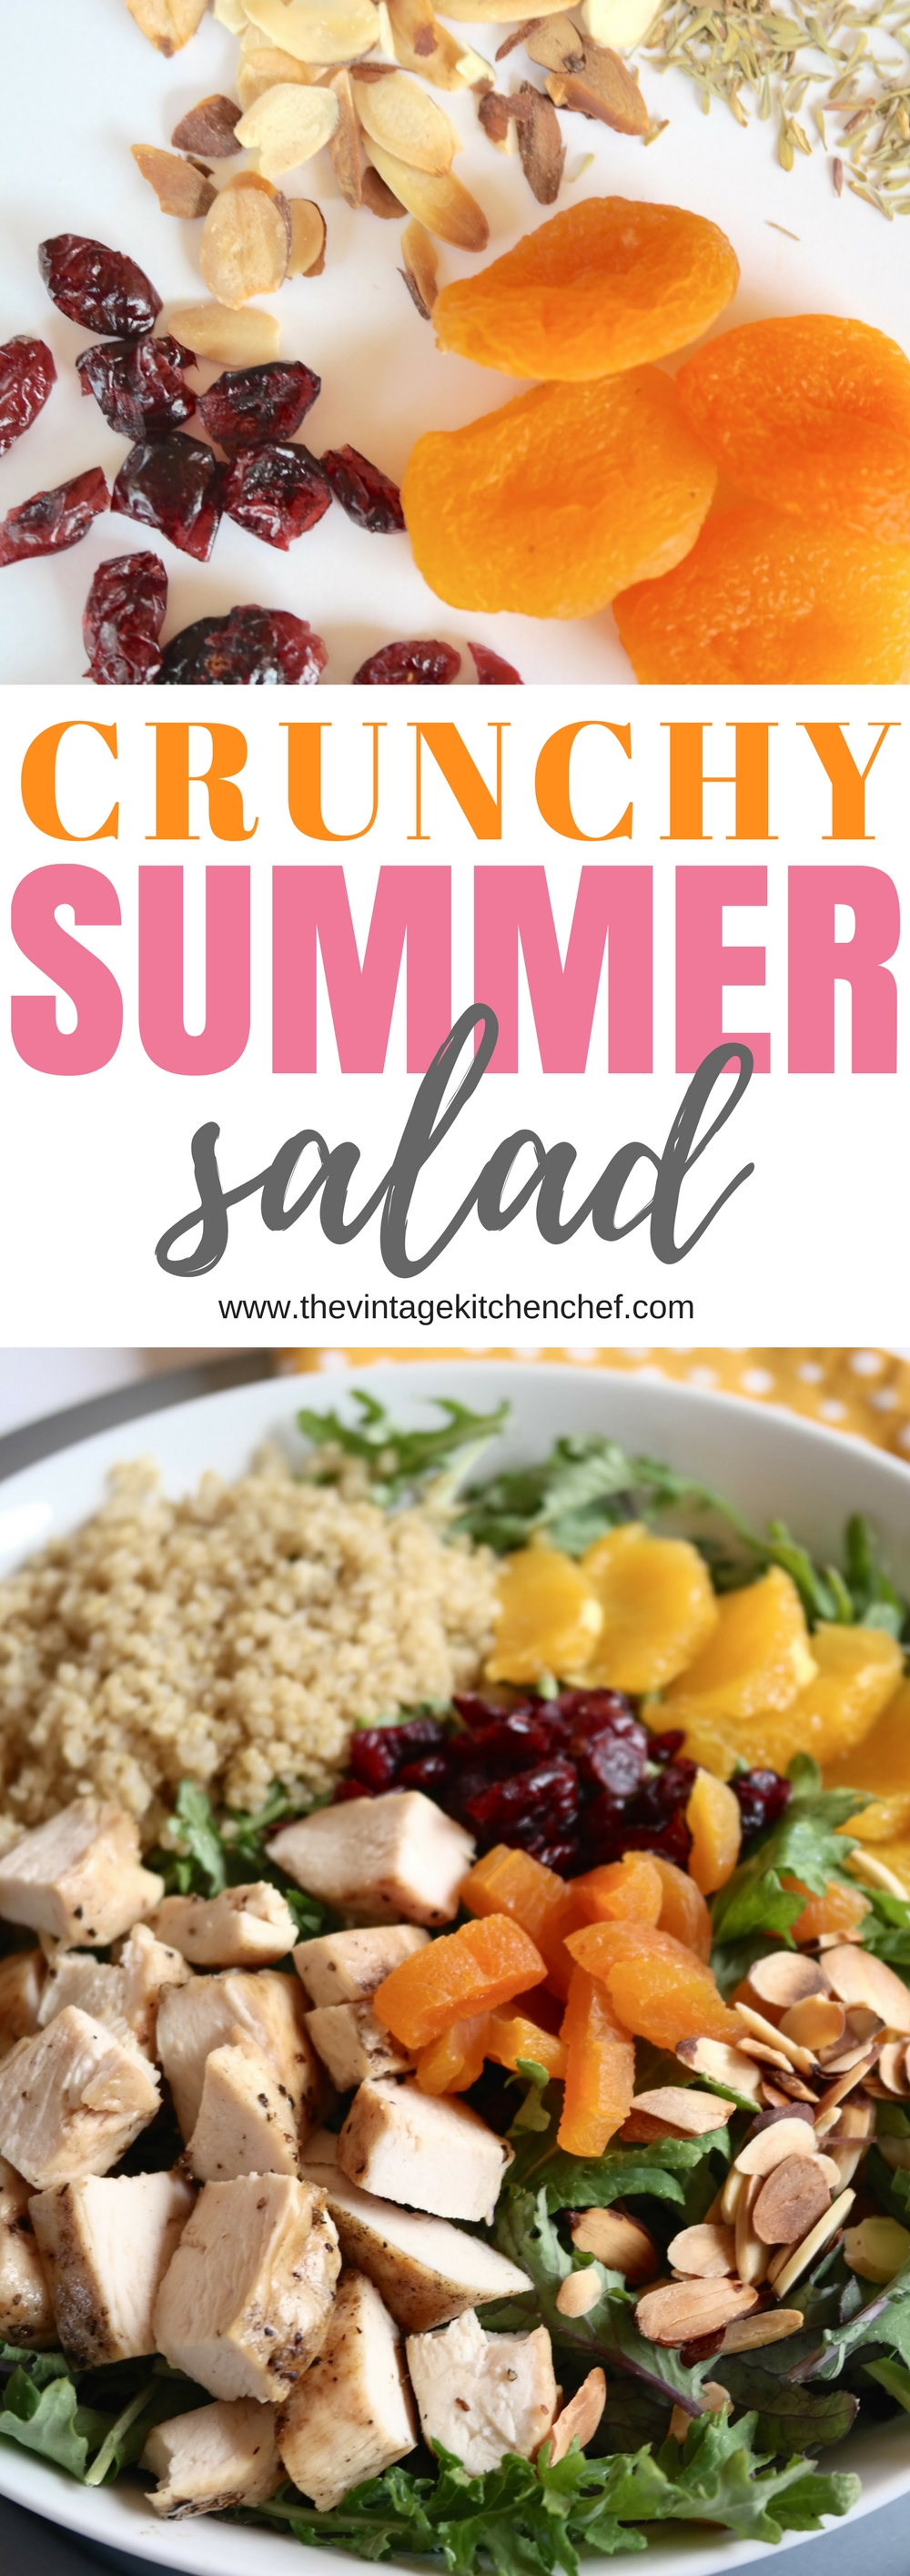 Enjoy plenty of flavors, color, and texture in this delicious and healthy crunchy summer salad. A real treat for the taste buds!